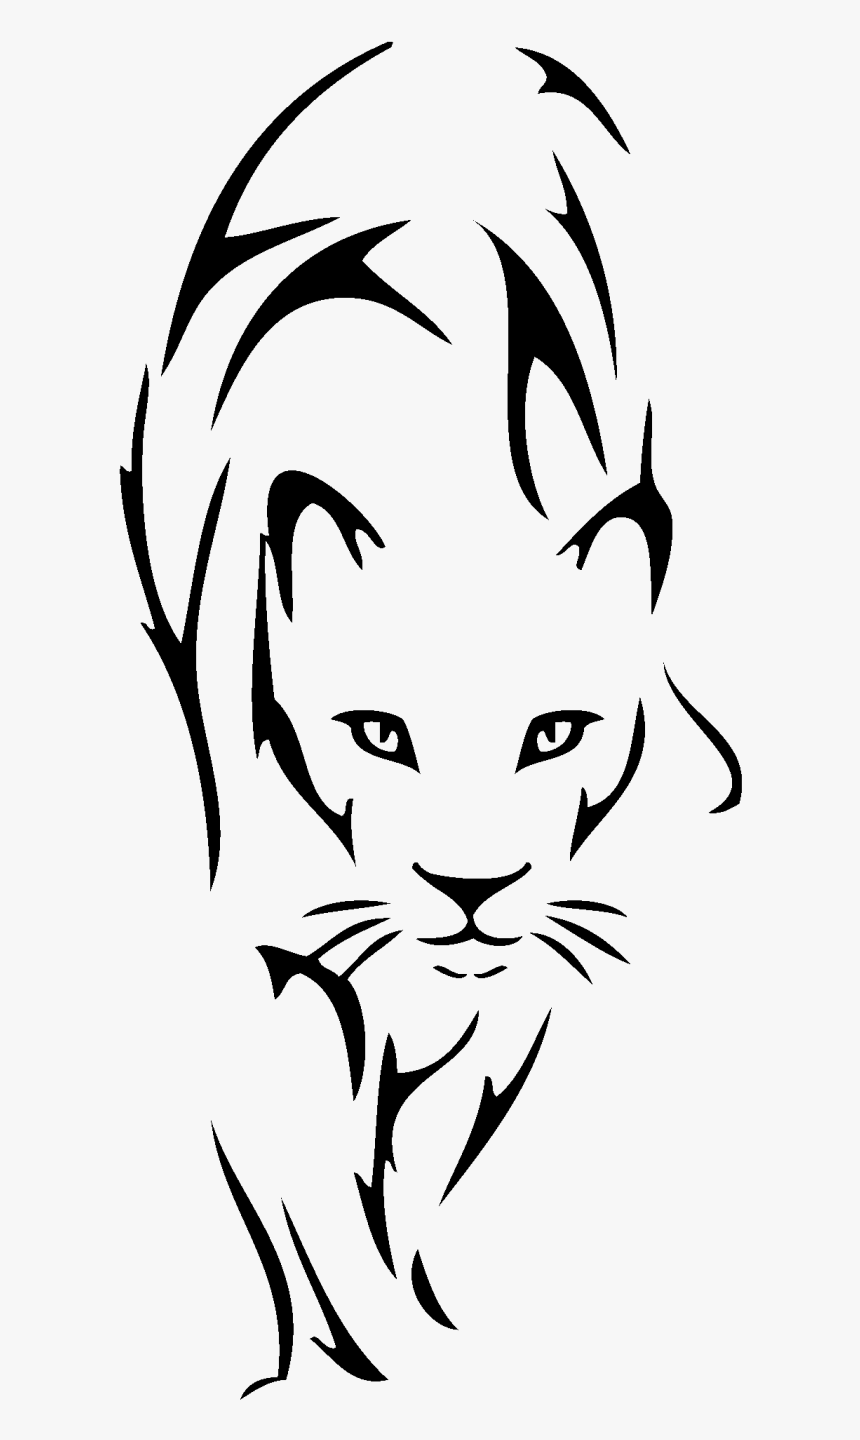 Lion Tattoo Drawing Tribe Clip Art Tribal Lioness Tattoo Hd Png Download Transparent Png Image Pngitem Black and grey lion tattoo for leo girls. lion tattoo drawing tribe clip art